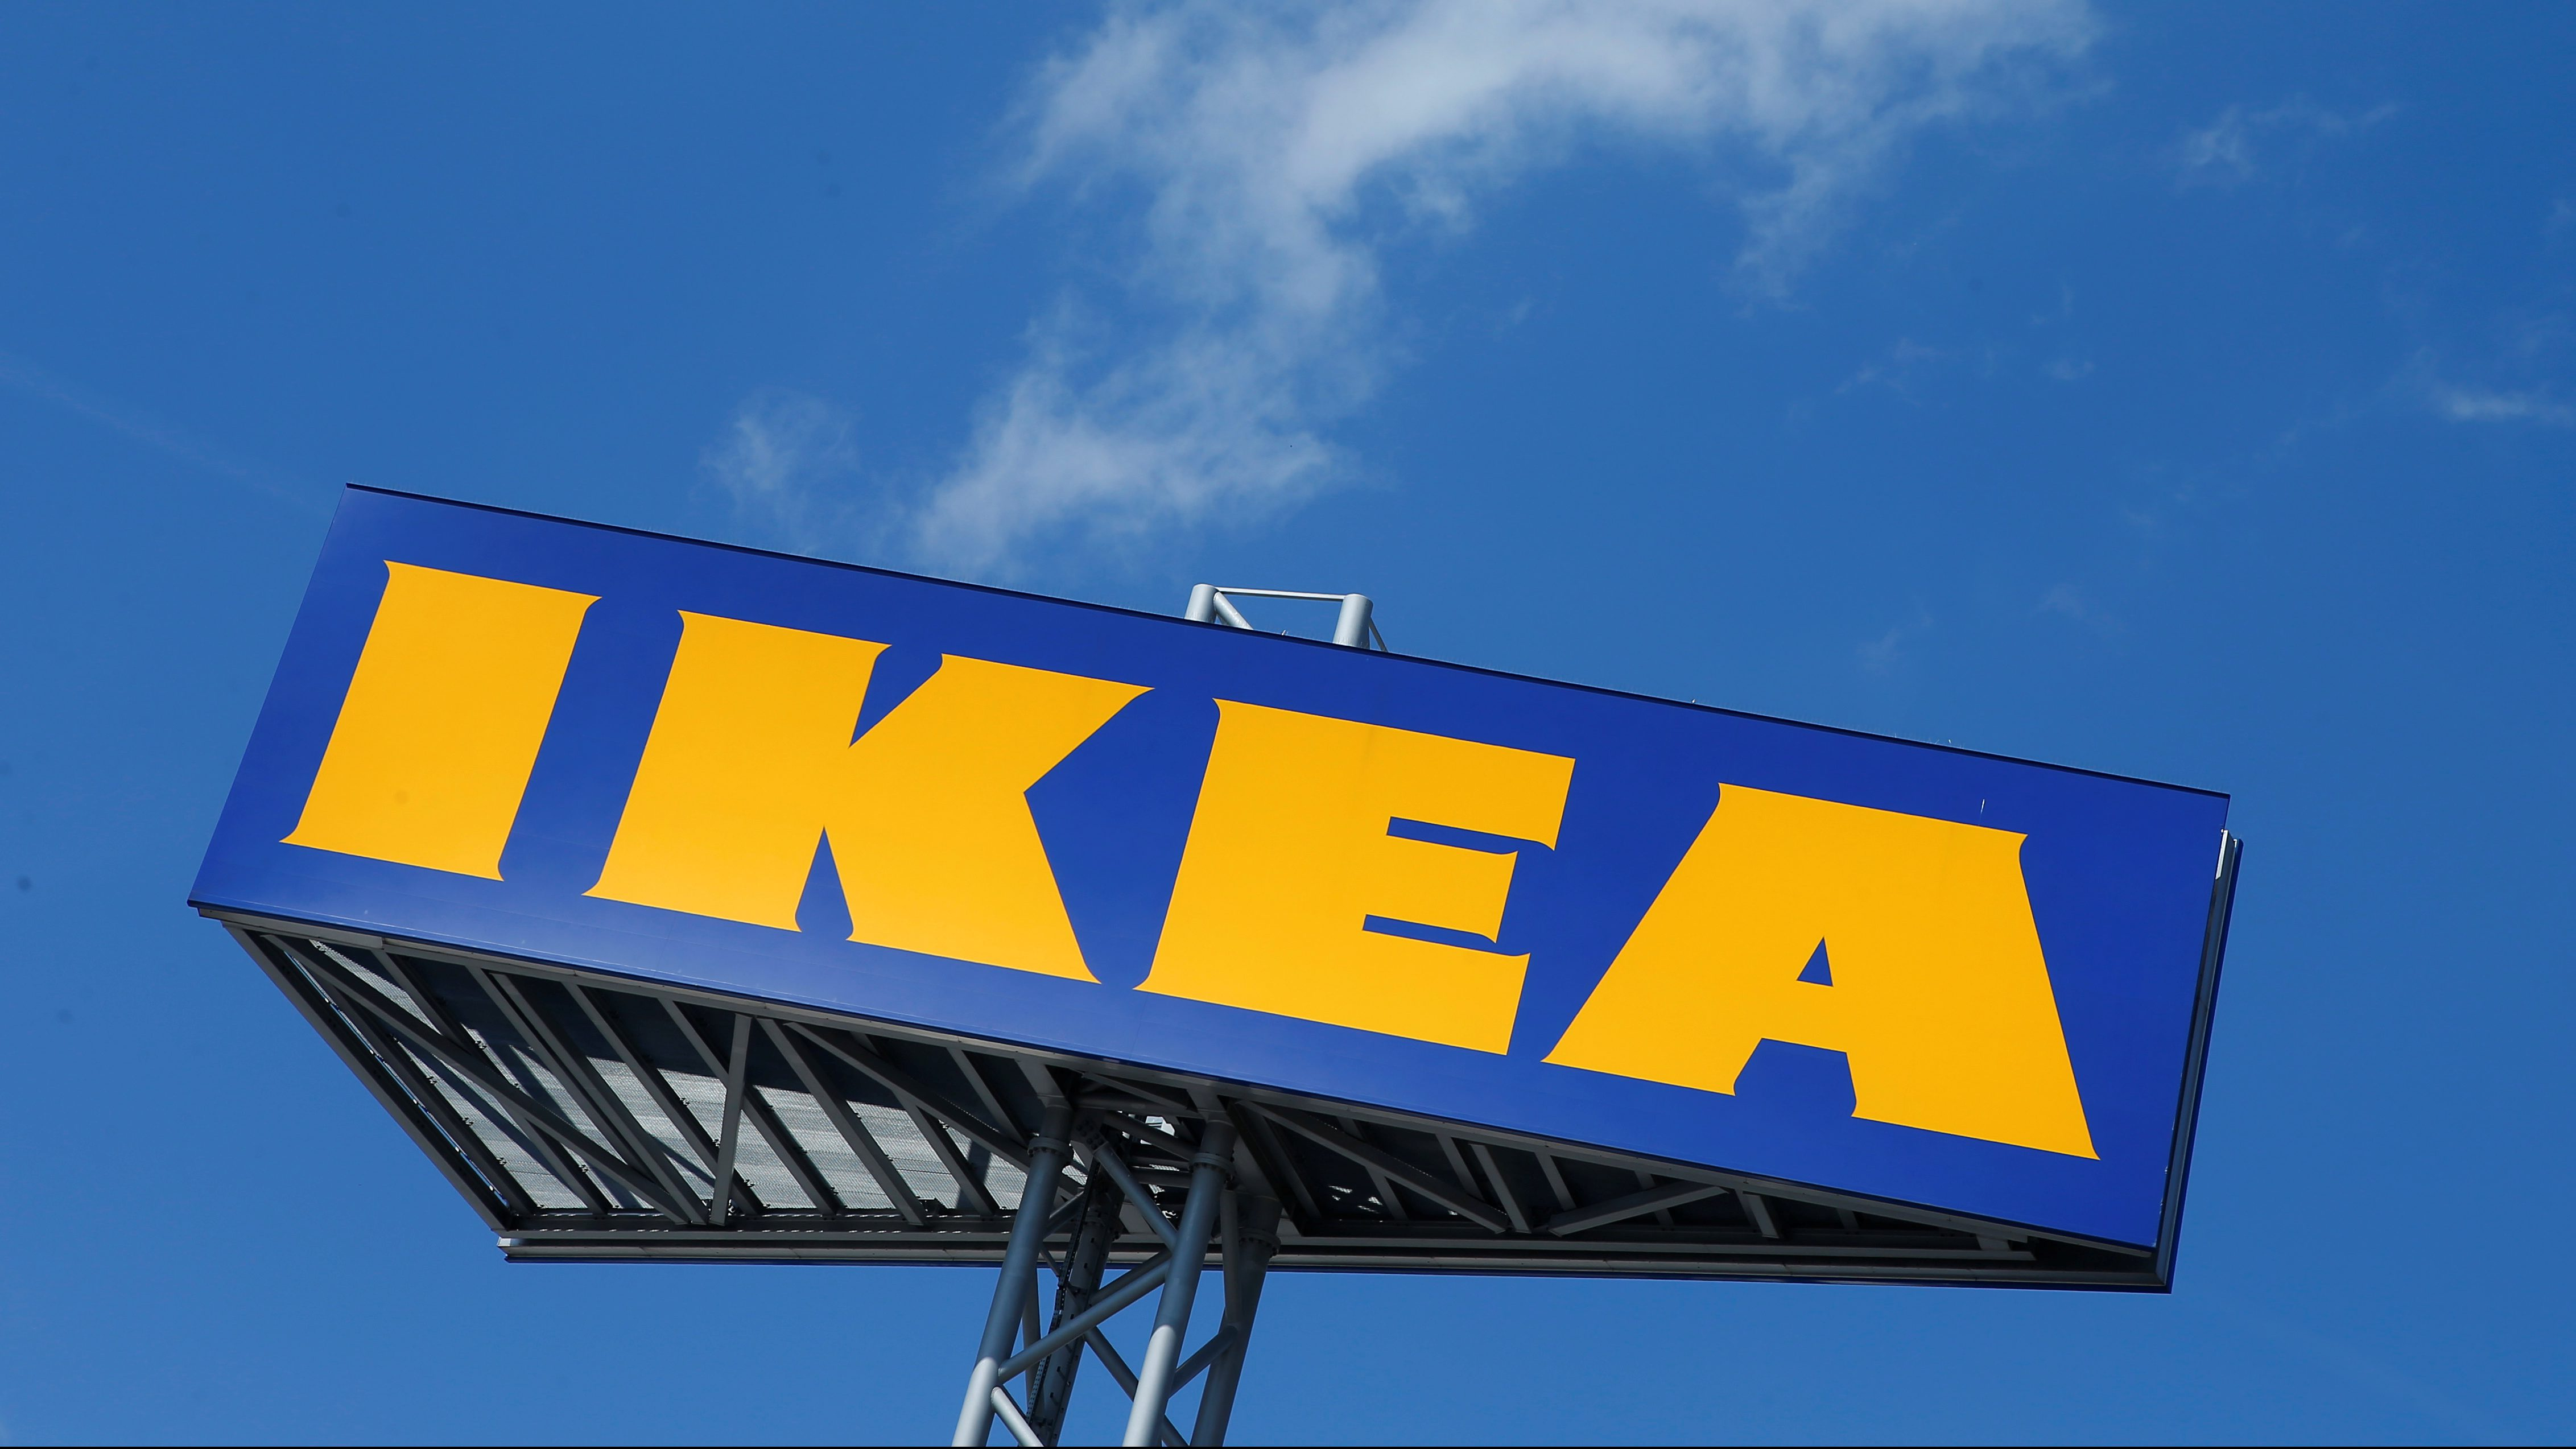 The logo of IKEA is seen above a store in Voesendorf, Austria, April 24, 2017. REUTERS/Heinz-Peter Bader - RC1850939B70